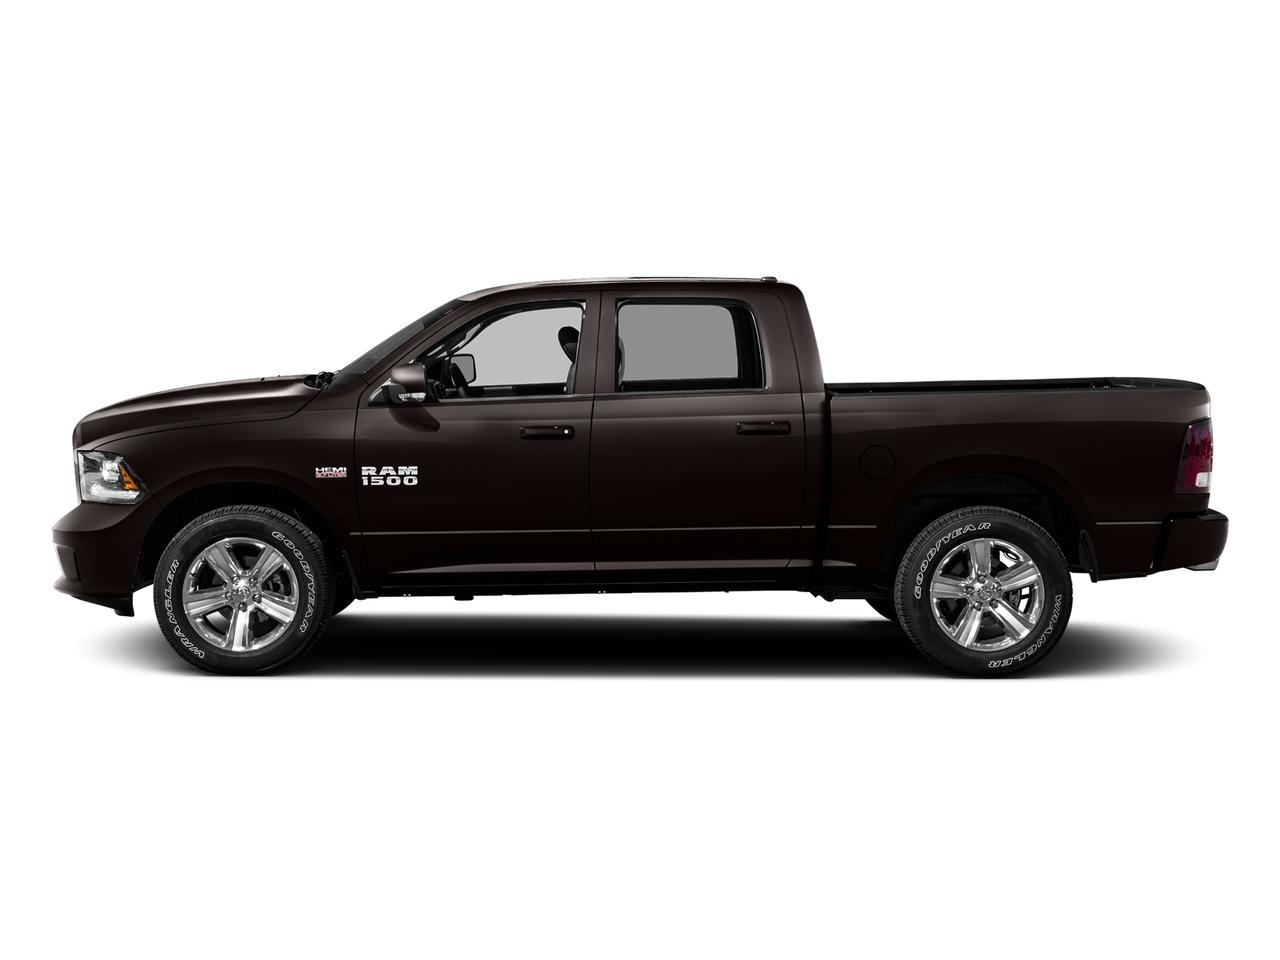 Used 2016 RAM Ram 1500 Pickup Outdoorsman with VIN 1C6RR7LT5GS371866 for sale in Willmar, Minnesota